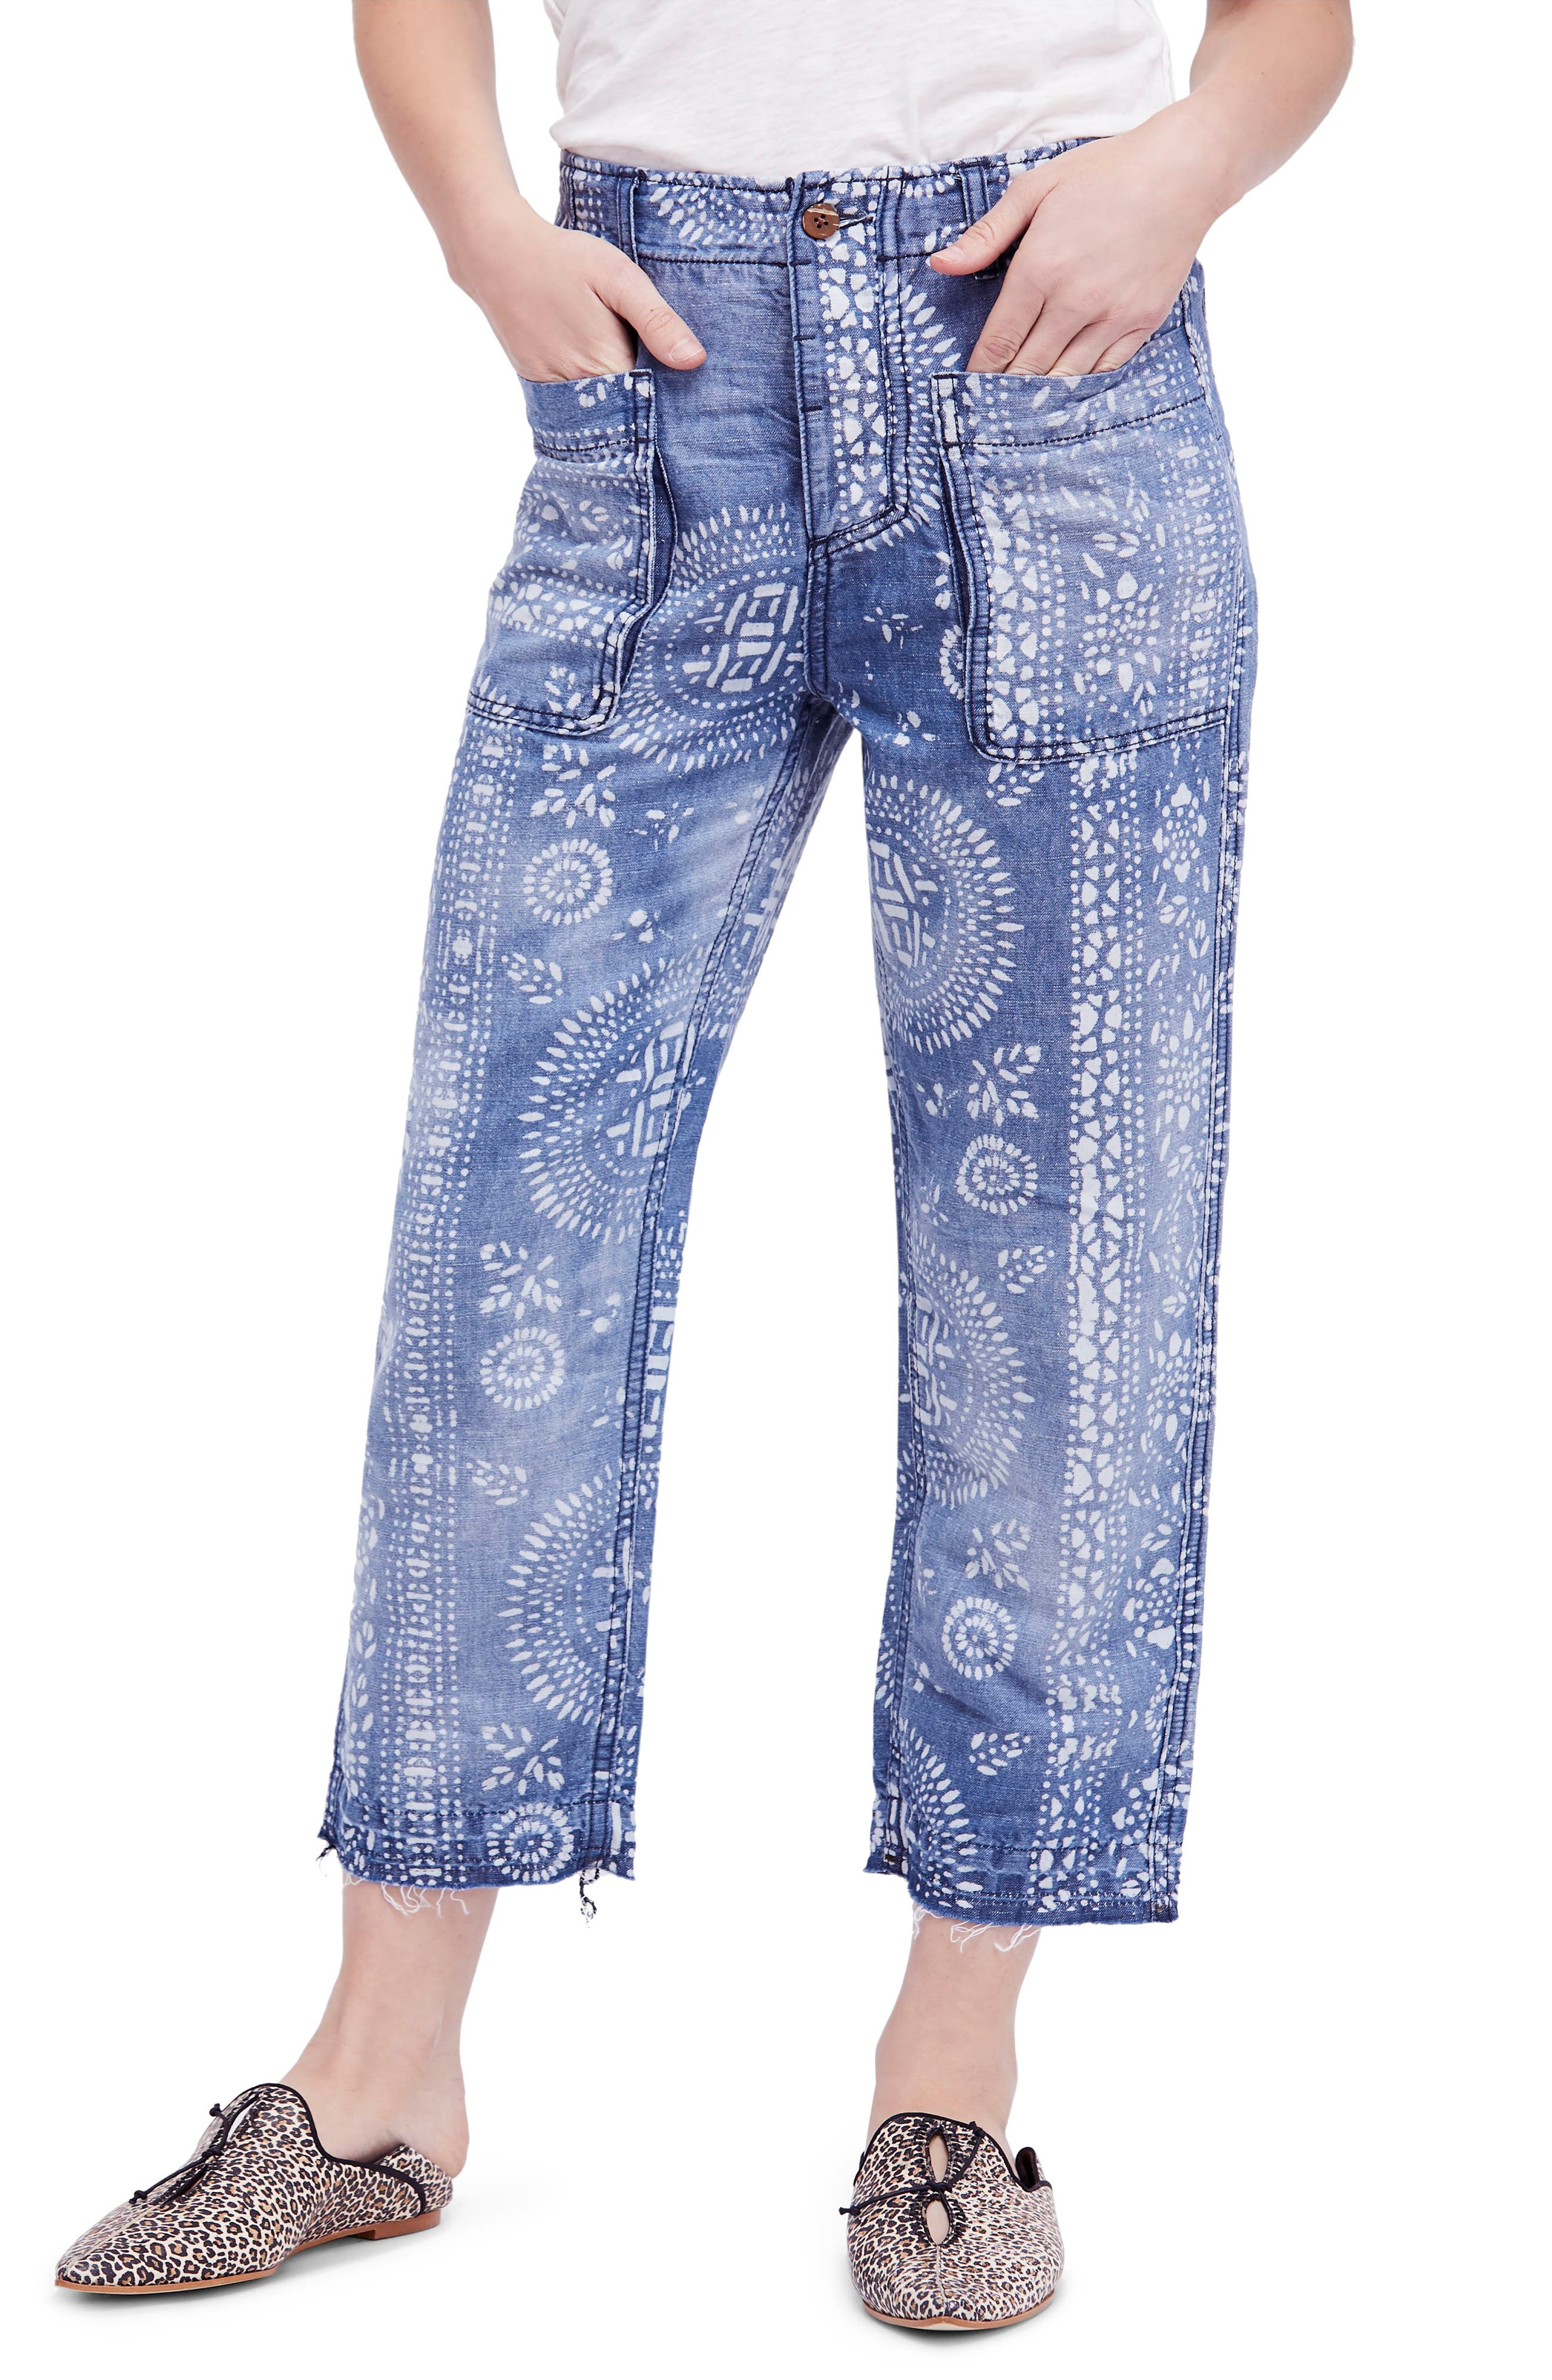 Island Vibes Discharge Trousers,                         Main,                         color, Blue